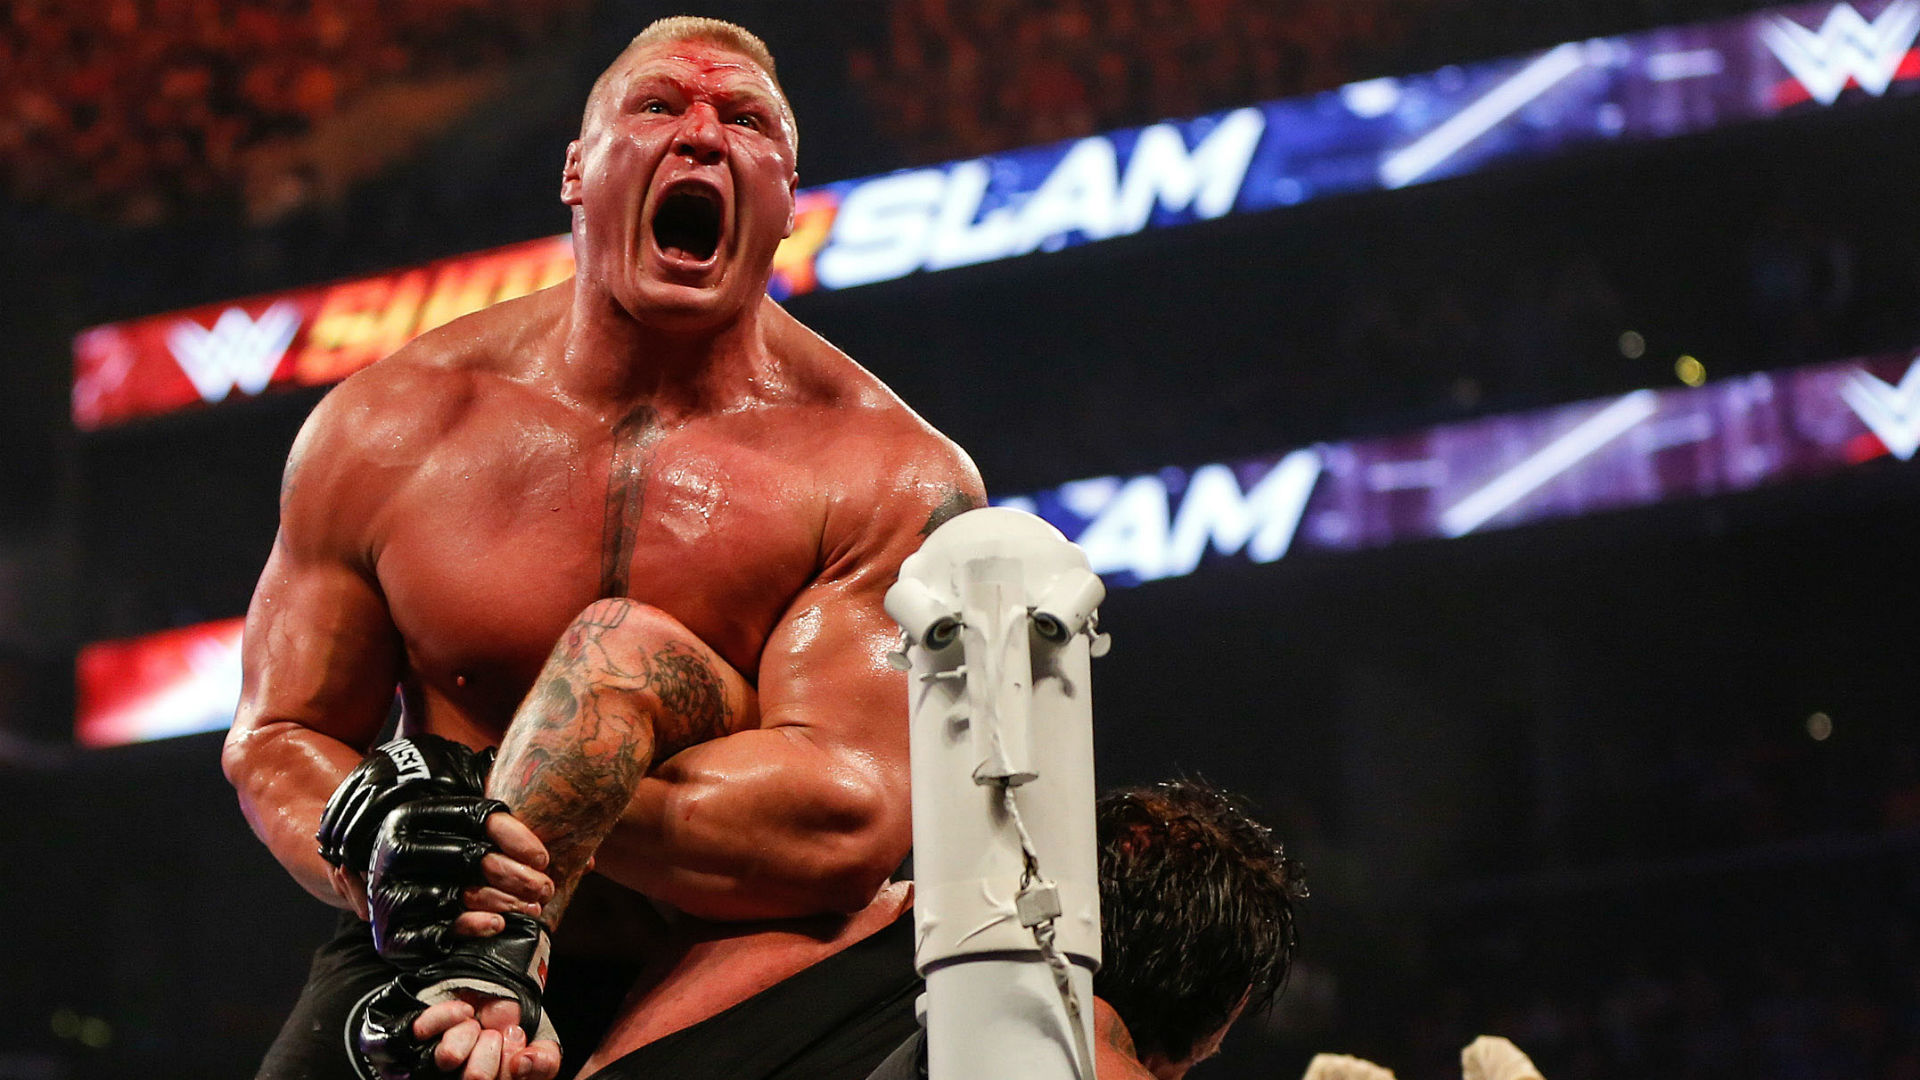 Brock Lesnar once wrestled at 98 pounds says HS coach. (Photo: Getty Images)